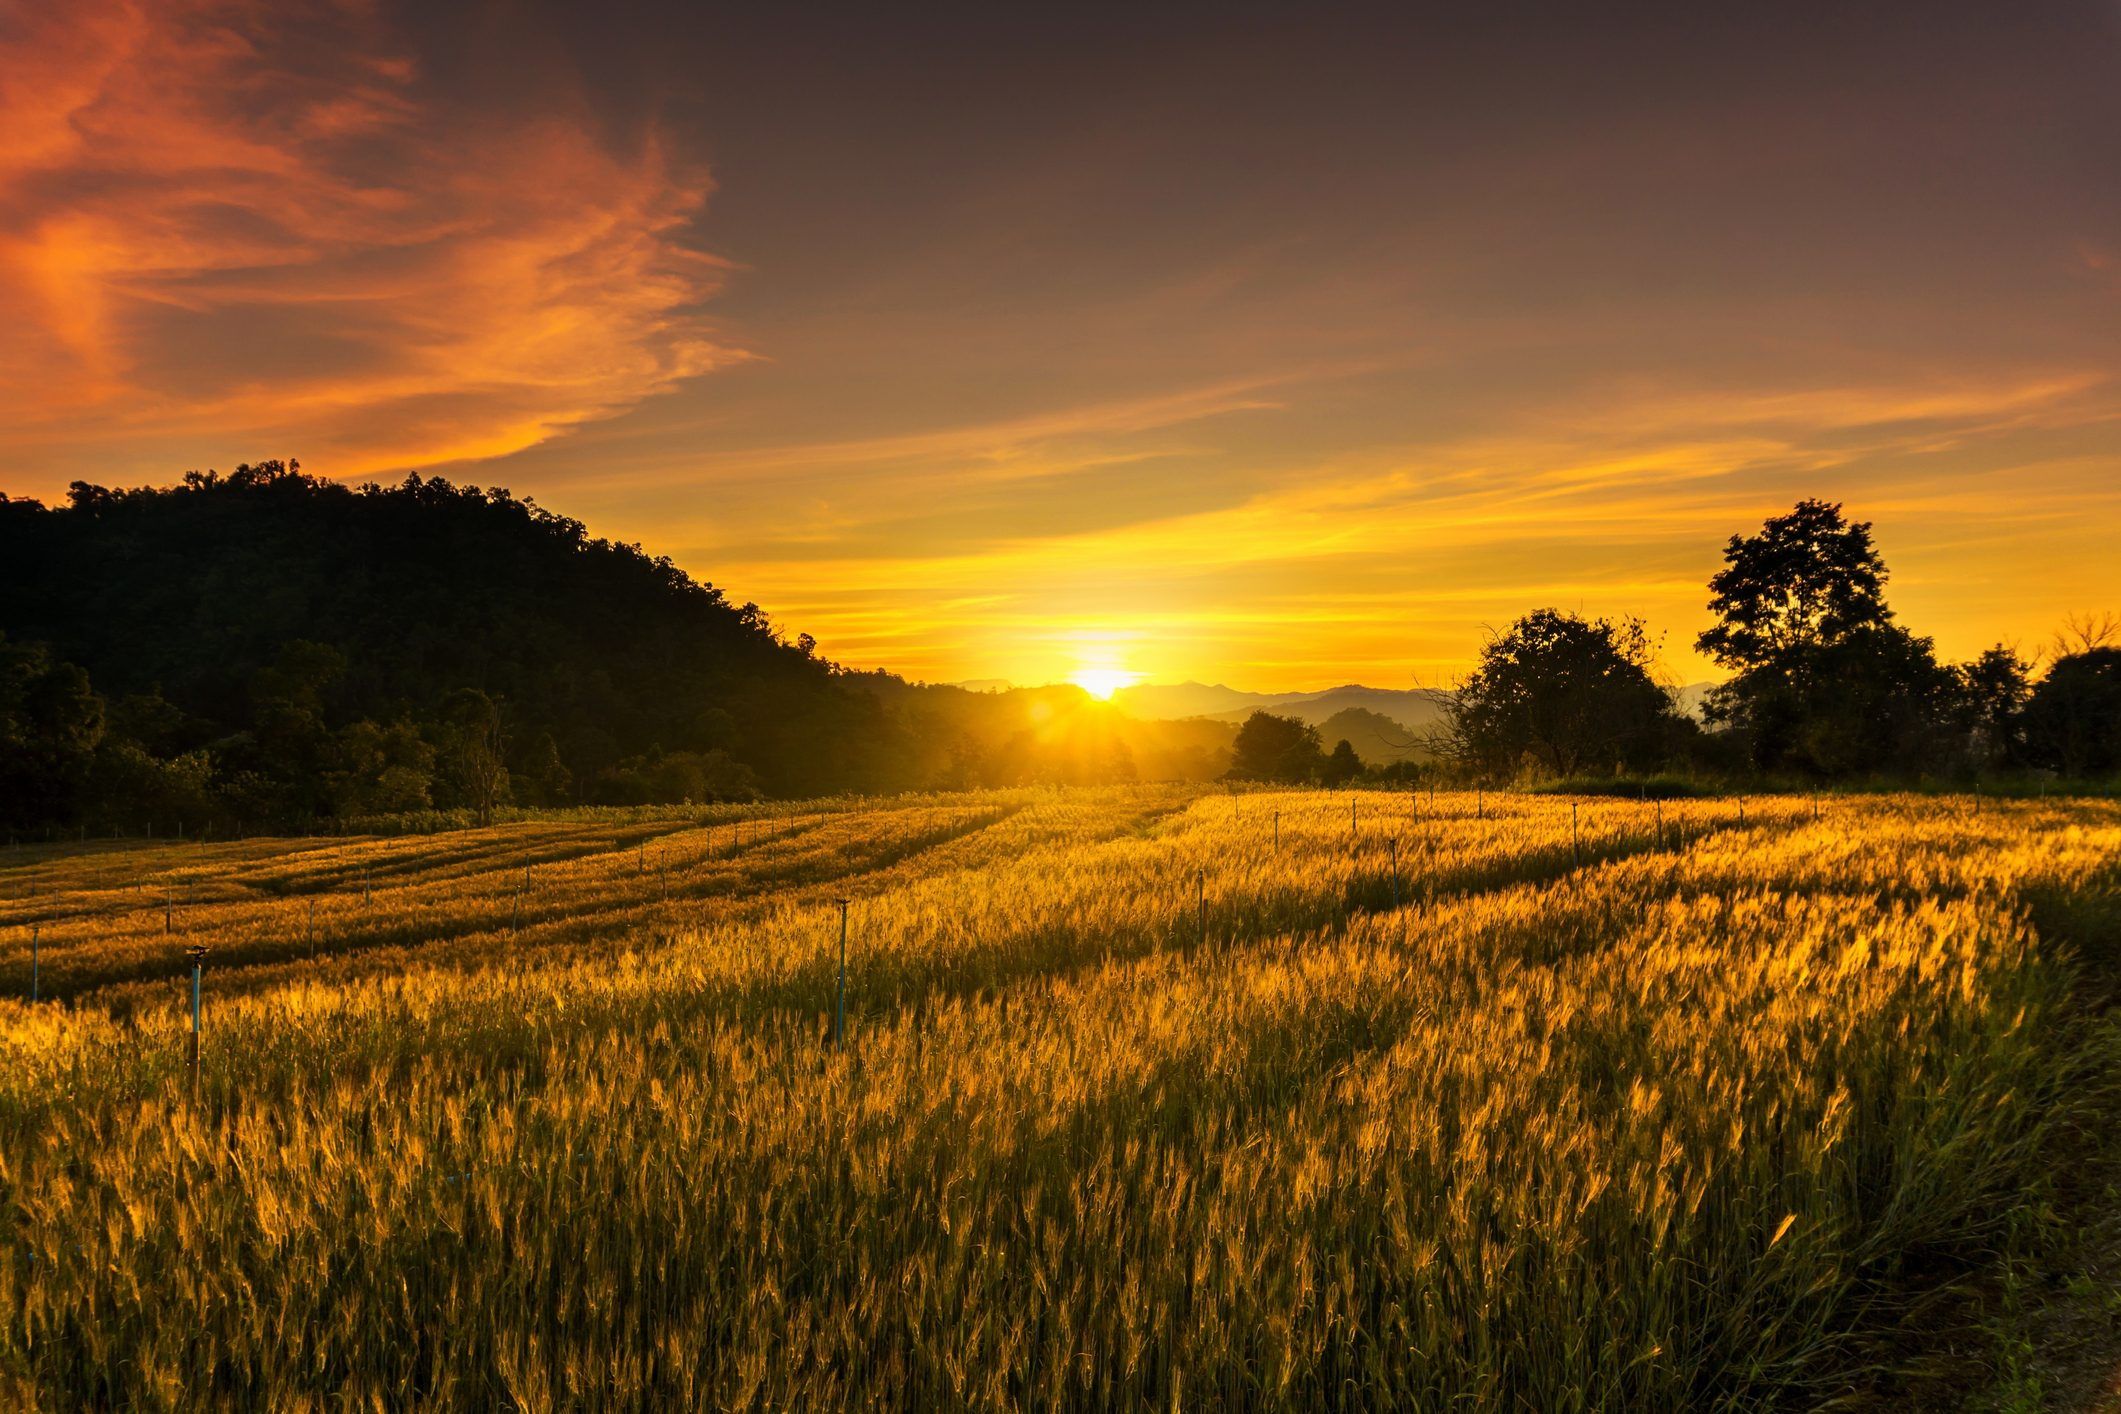 Landscape of Barley rice field at the sunset time with lens flare, travel and nature concept